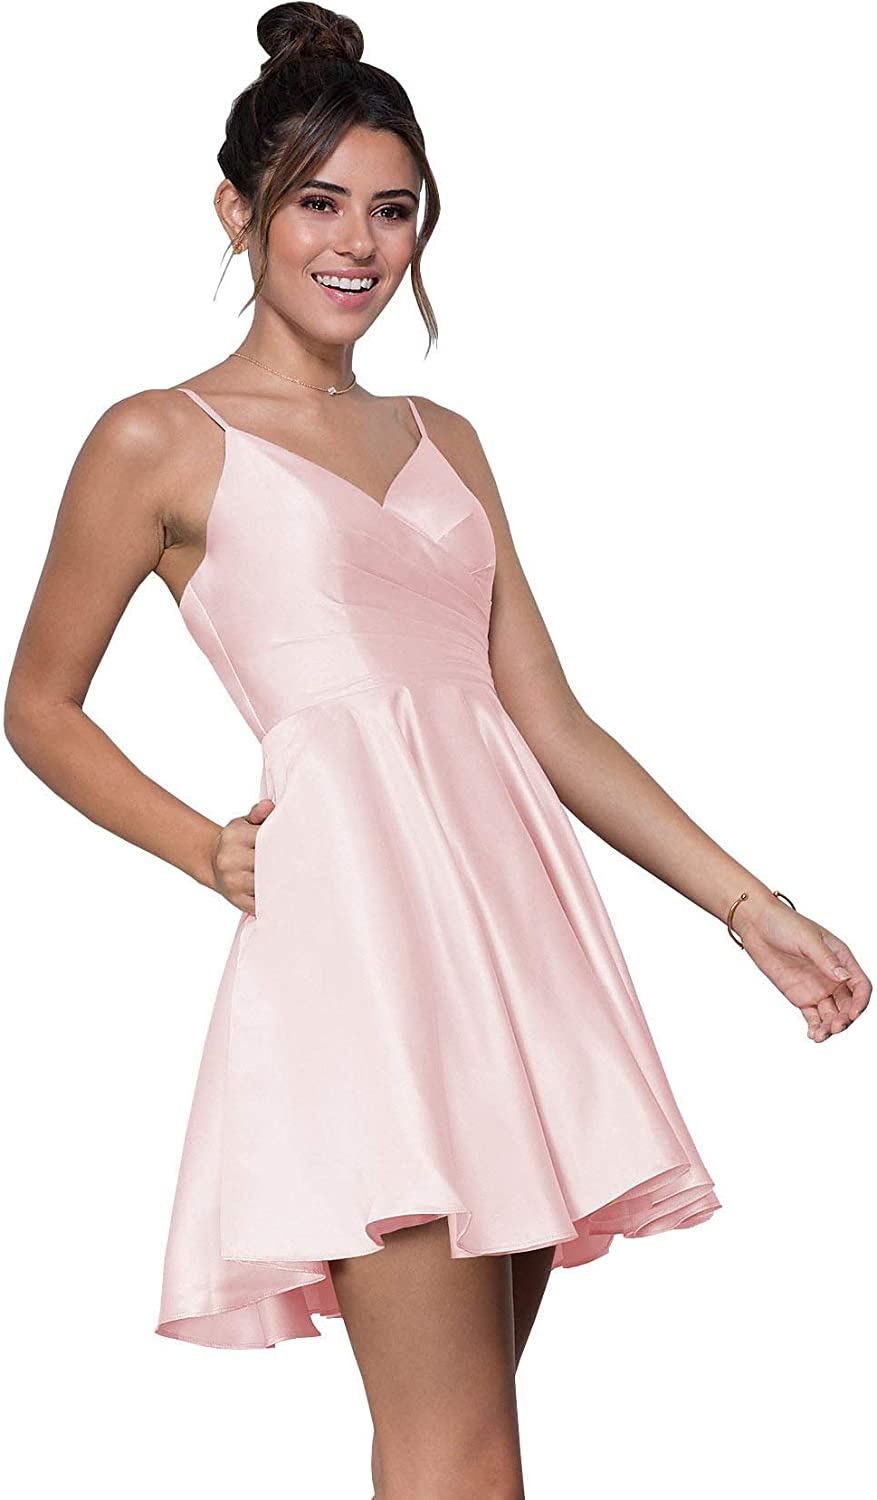 WuliDress Women's Spaghetti Strap A Line Pleated Satin V Neck Homecoming Dress Short Prom Formal Gown with Pockets 612pHBq5jSL